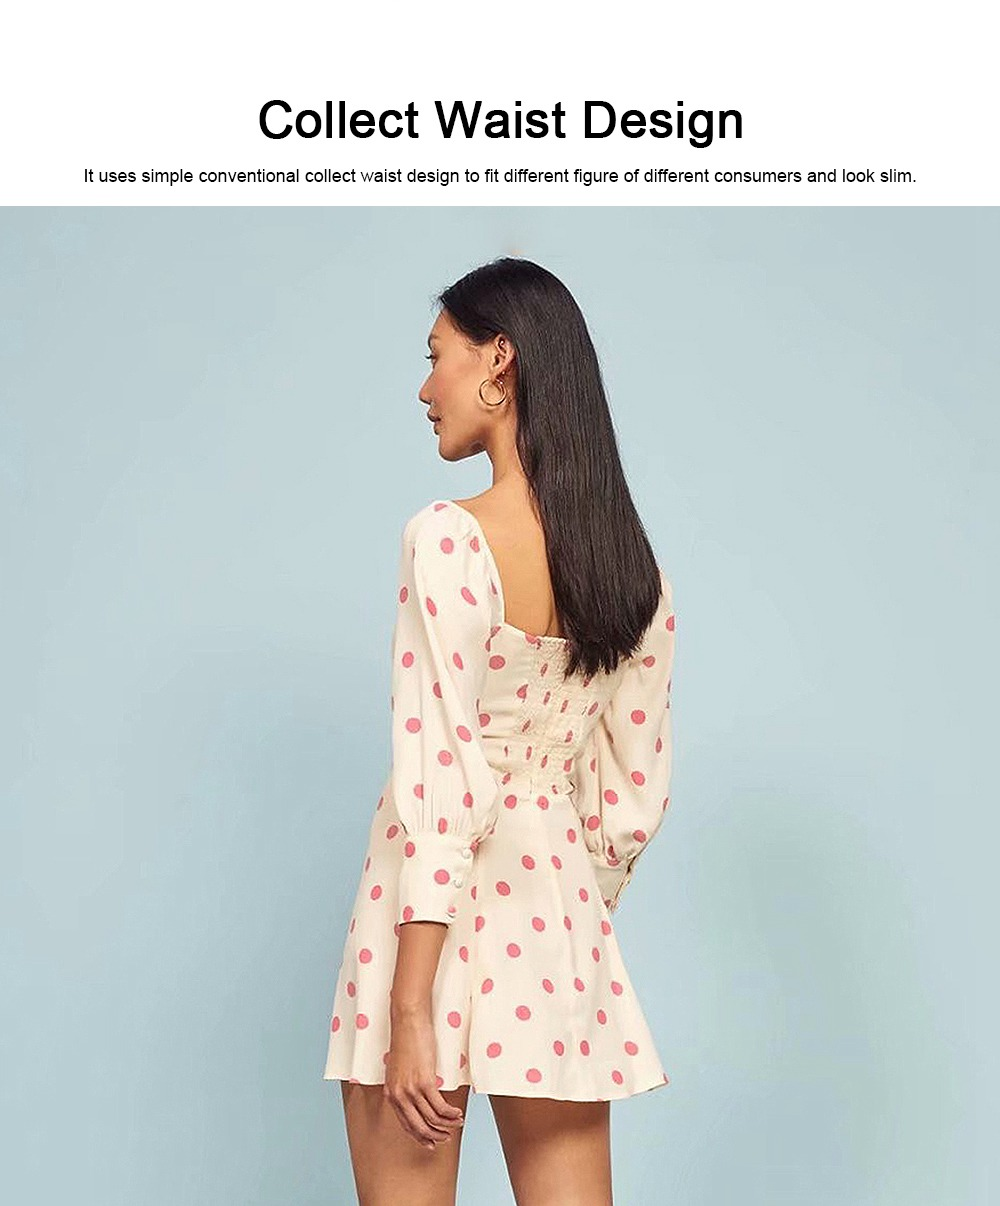 Polka Dot Dress for Women Three Quarter Sleeve Collect Waist Fine Linen Square-cut Collar Short Skirt 2019 5